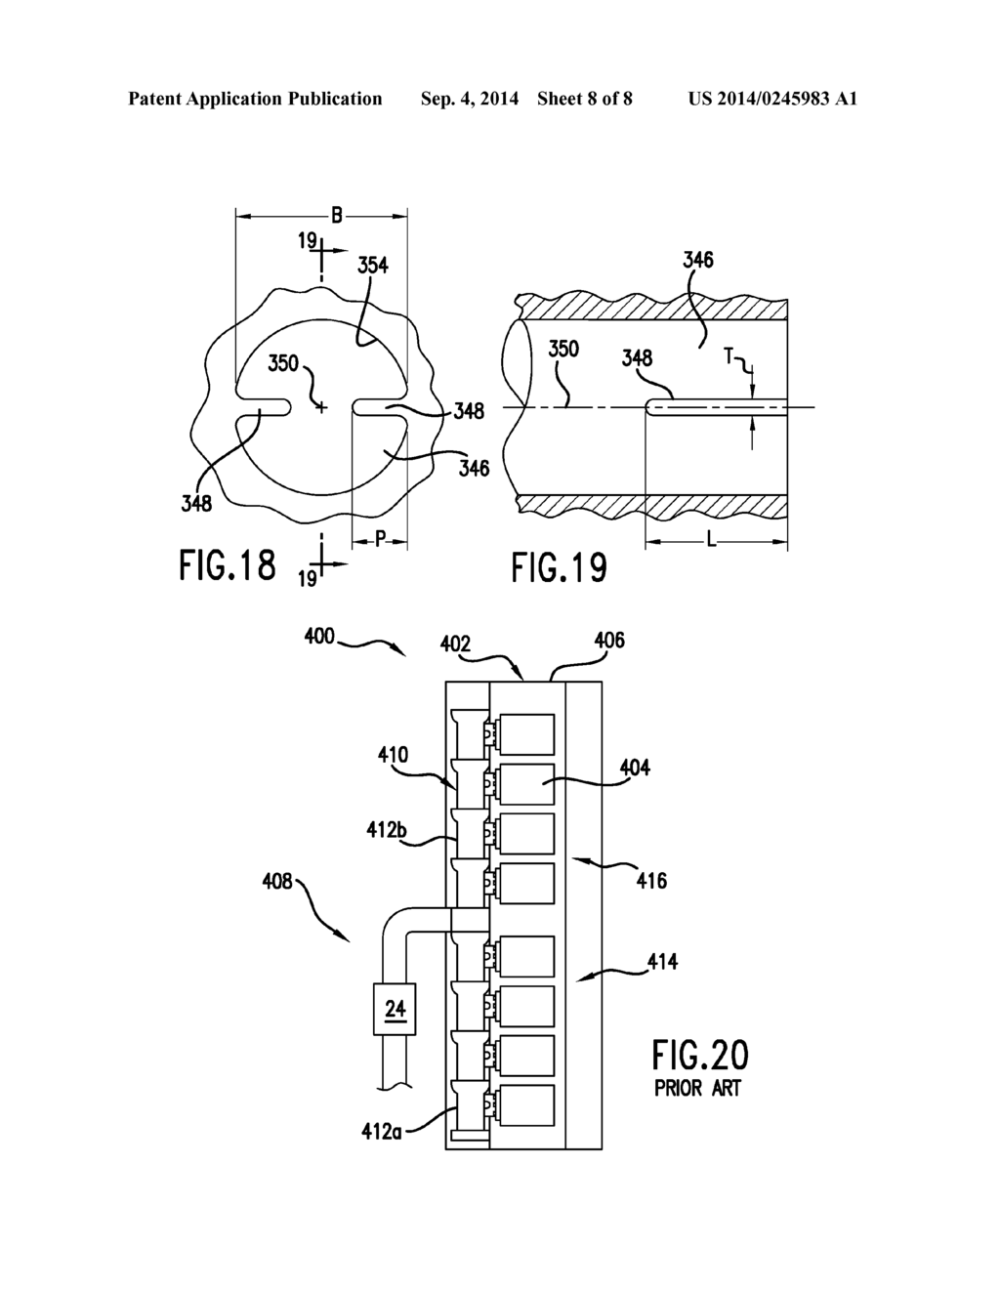 medium resolution of air intake system for internal combustion engine diagram schematic and image 09